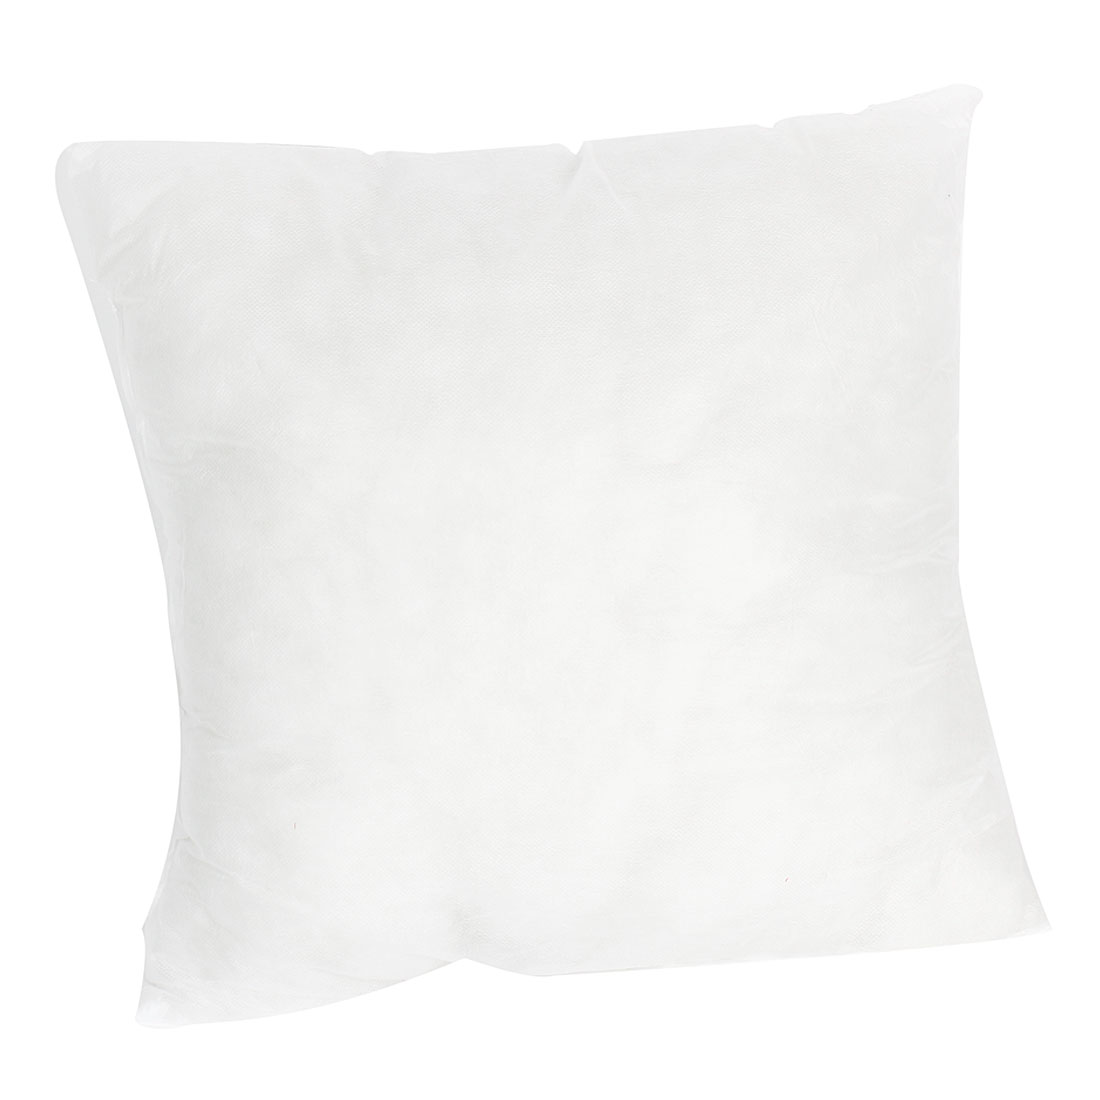 Household White Square Shaped Soft Cotton Blends Back Cushion Throw Pillow Inner